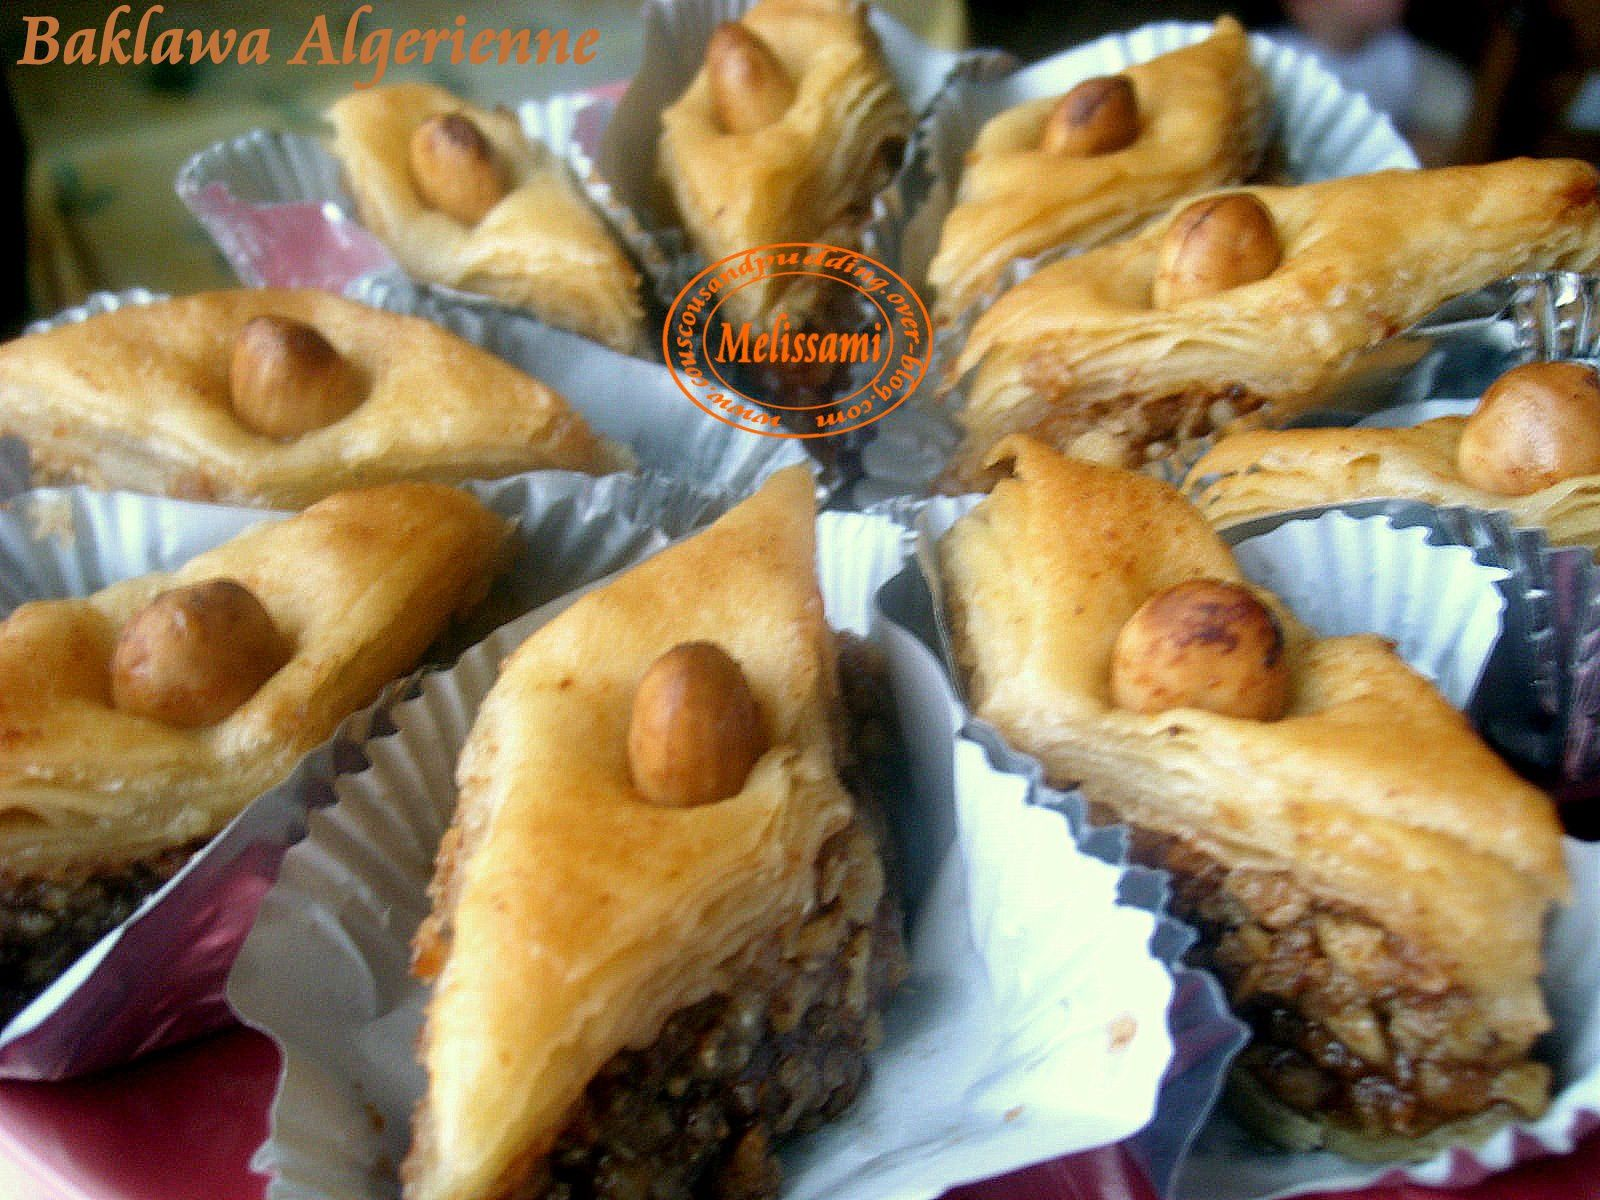 Baklawa baklava or baqlawa couscous and pudding again i share with you today another recipe for an algerian sweet with honey the baqlawa with almond or almonds walnuts that we find at almost all the forumfinder Images